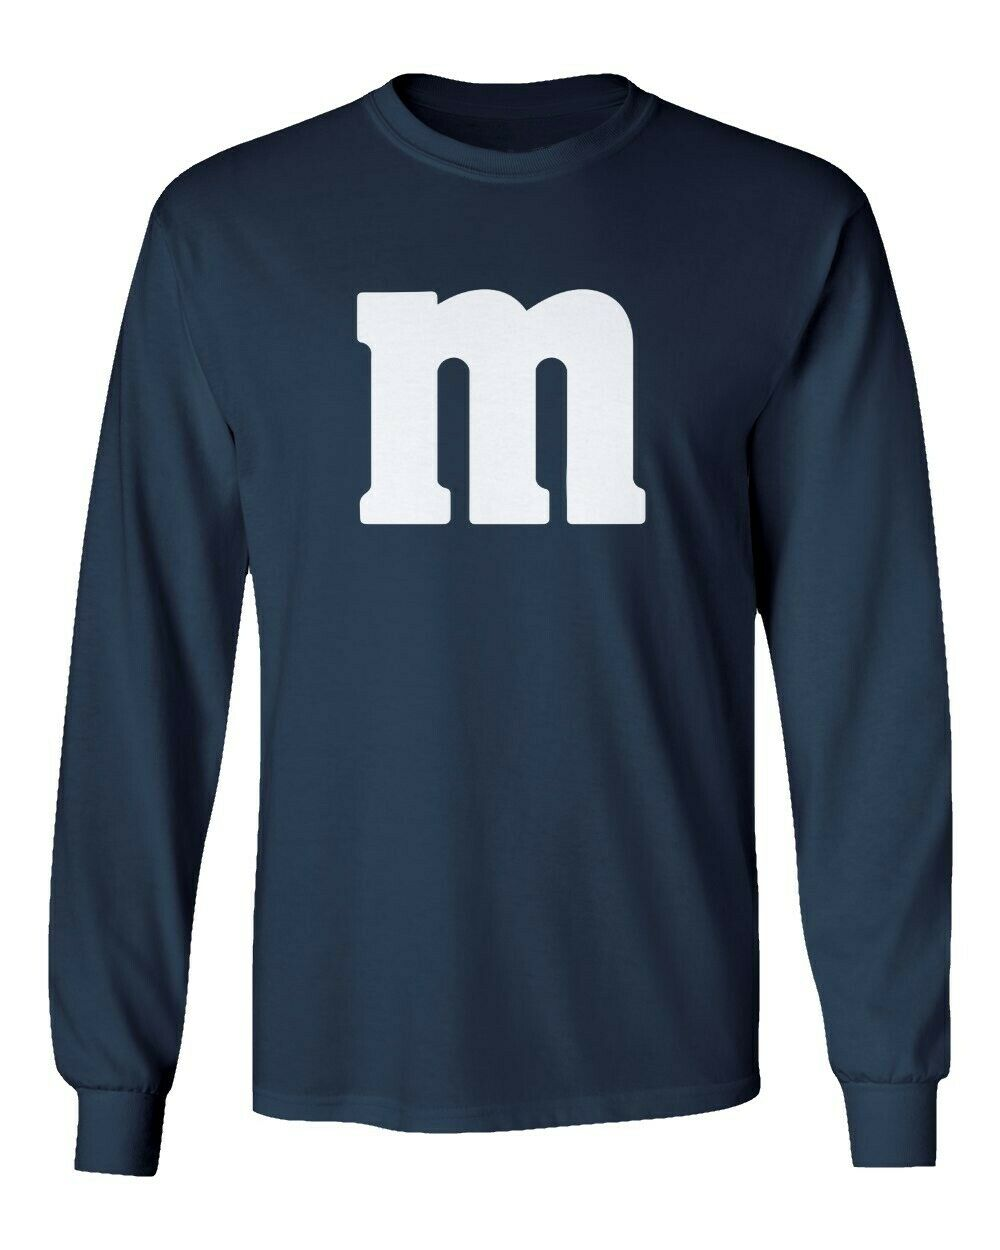 9 COLOR CHOICES SM-5XL M /& M T-Shirt Halloween T shirt Costume M and M